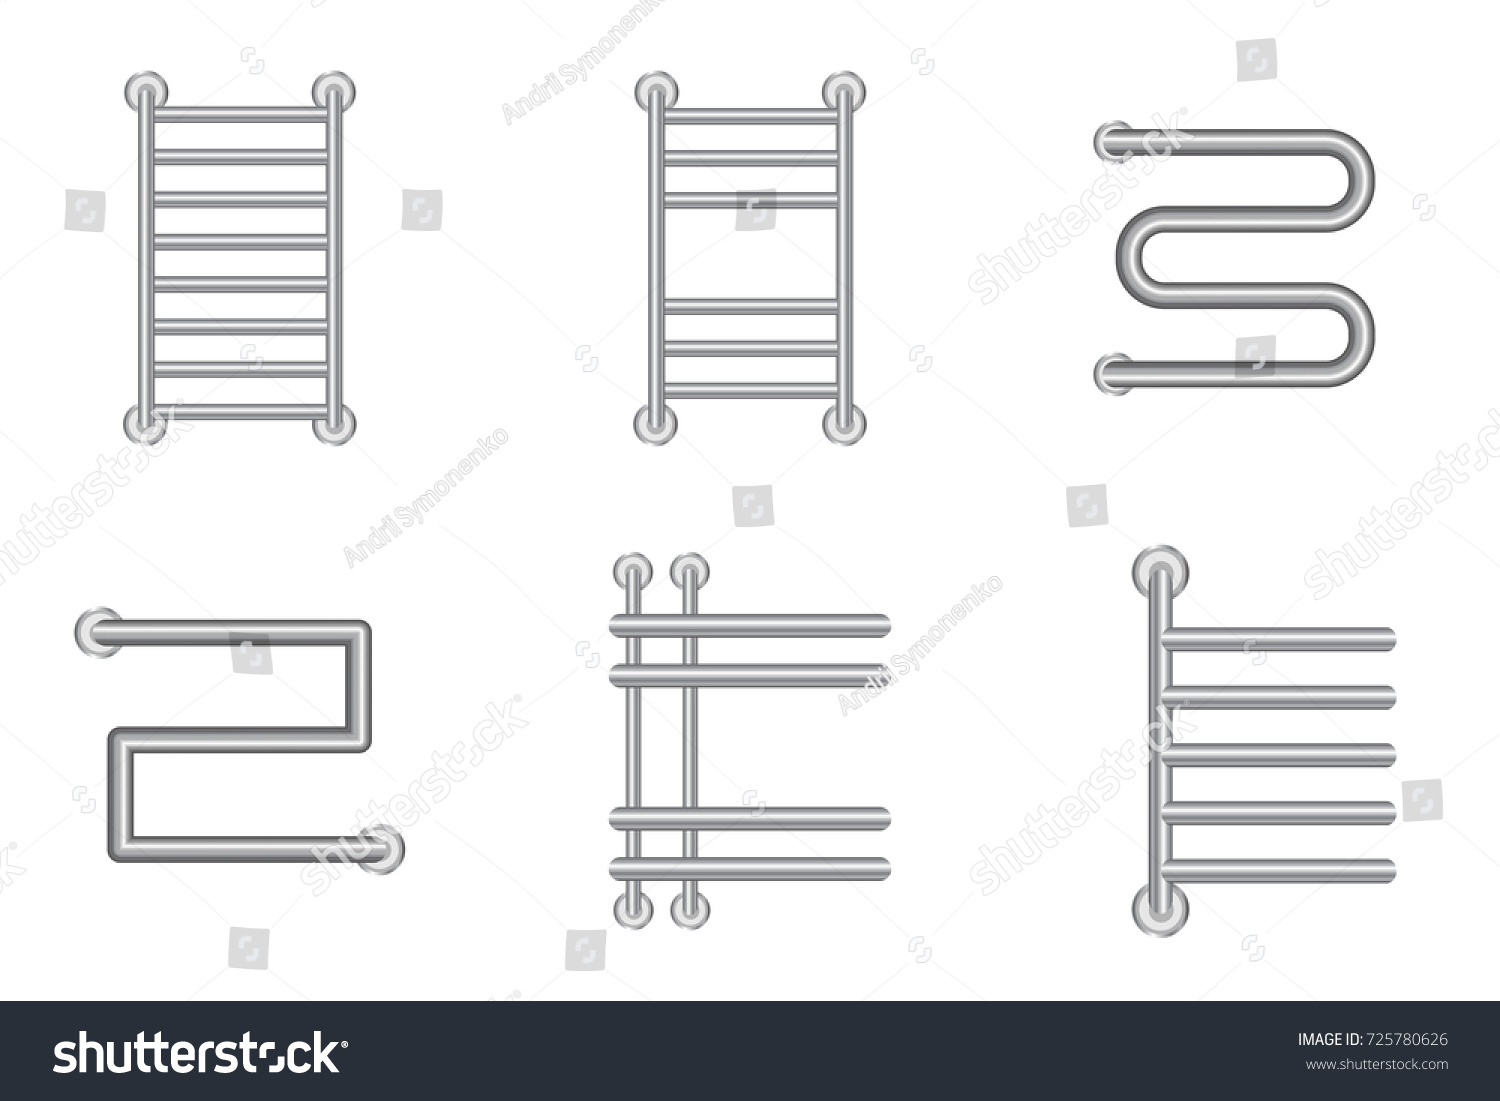 stock vector realistic heated towel rail or heating battery radiator icons set vector illustration 725780626 realistic heated towel rail heating battery stock vector 725780626 heated towel rail wiring diagram at gsmportal.co